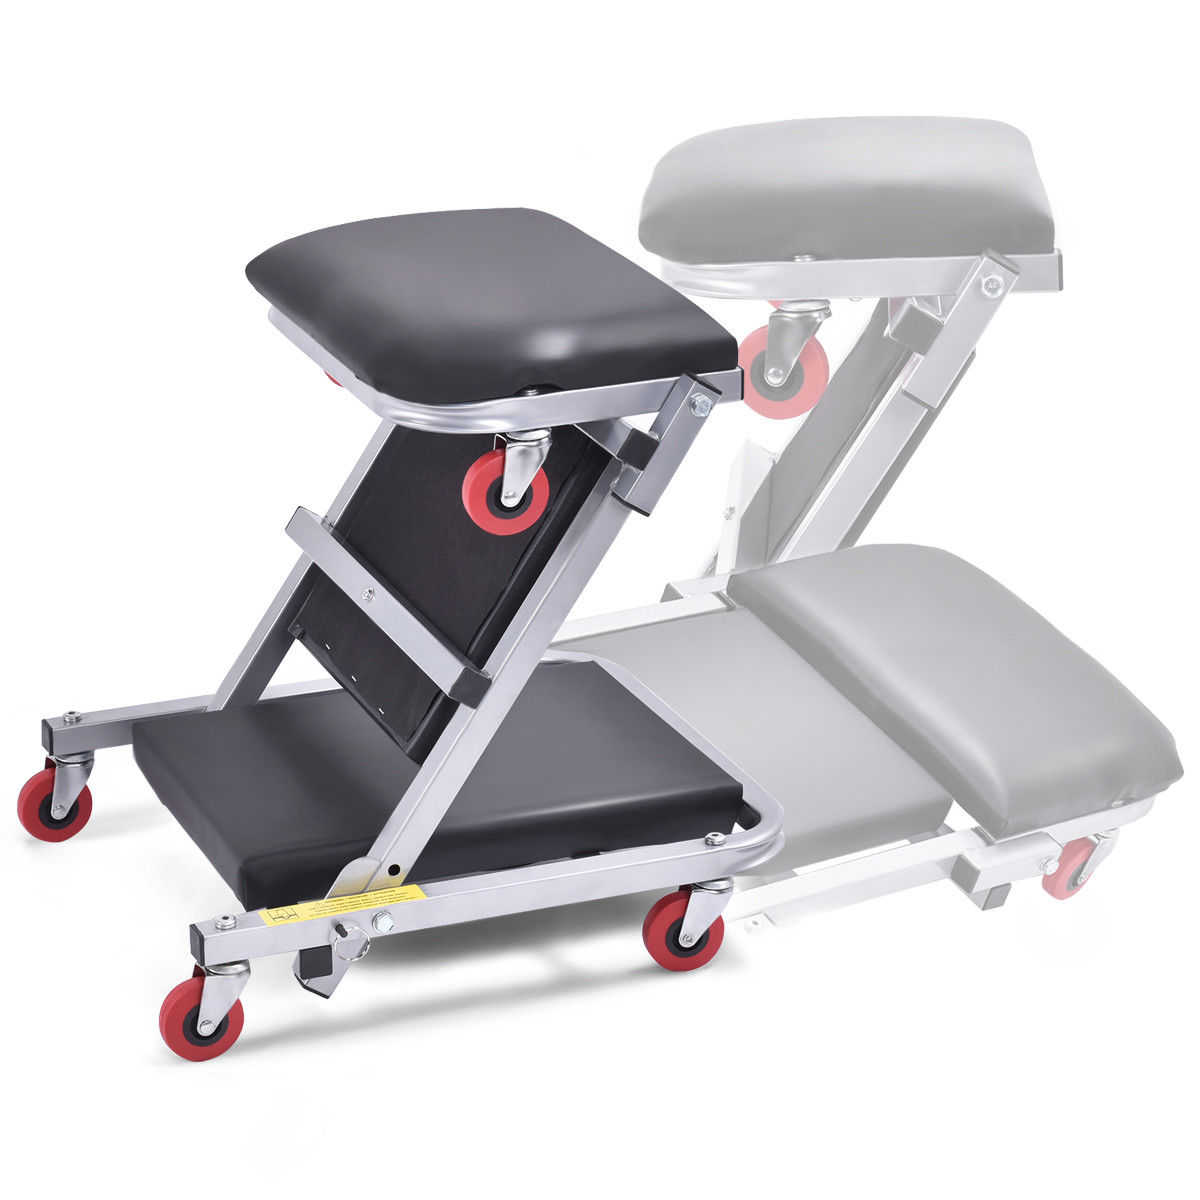 Costway 41'' 2 In 1 Foldable Mechanics Z Creeper Seat Rolling Chair Garage Work Stool